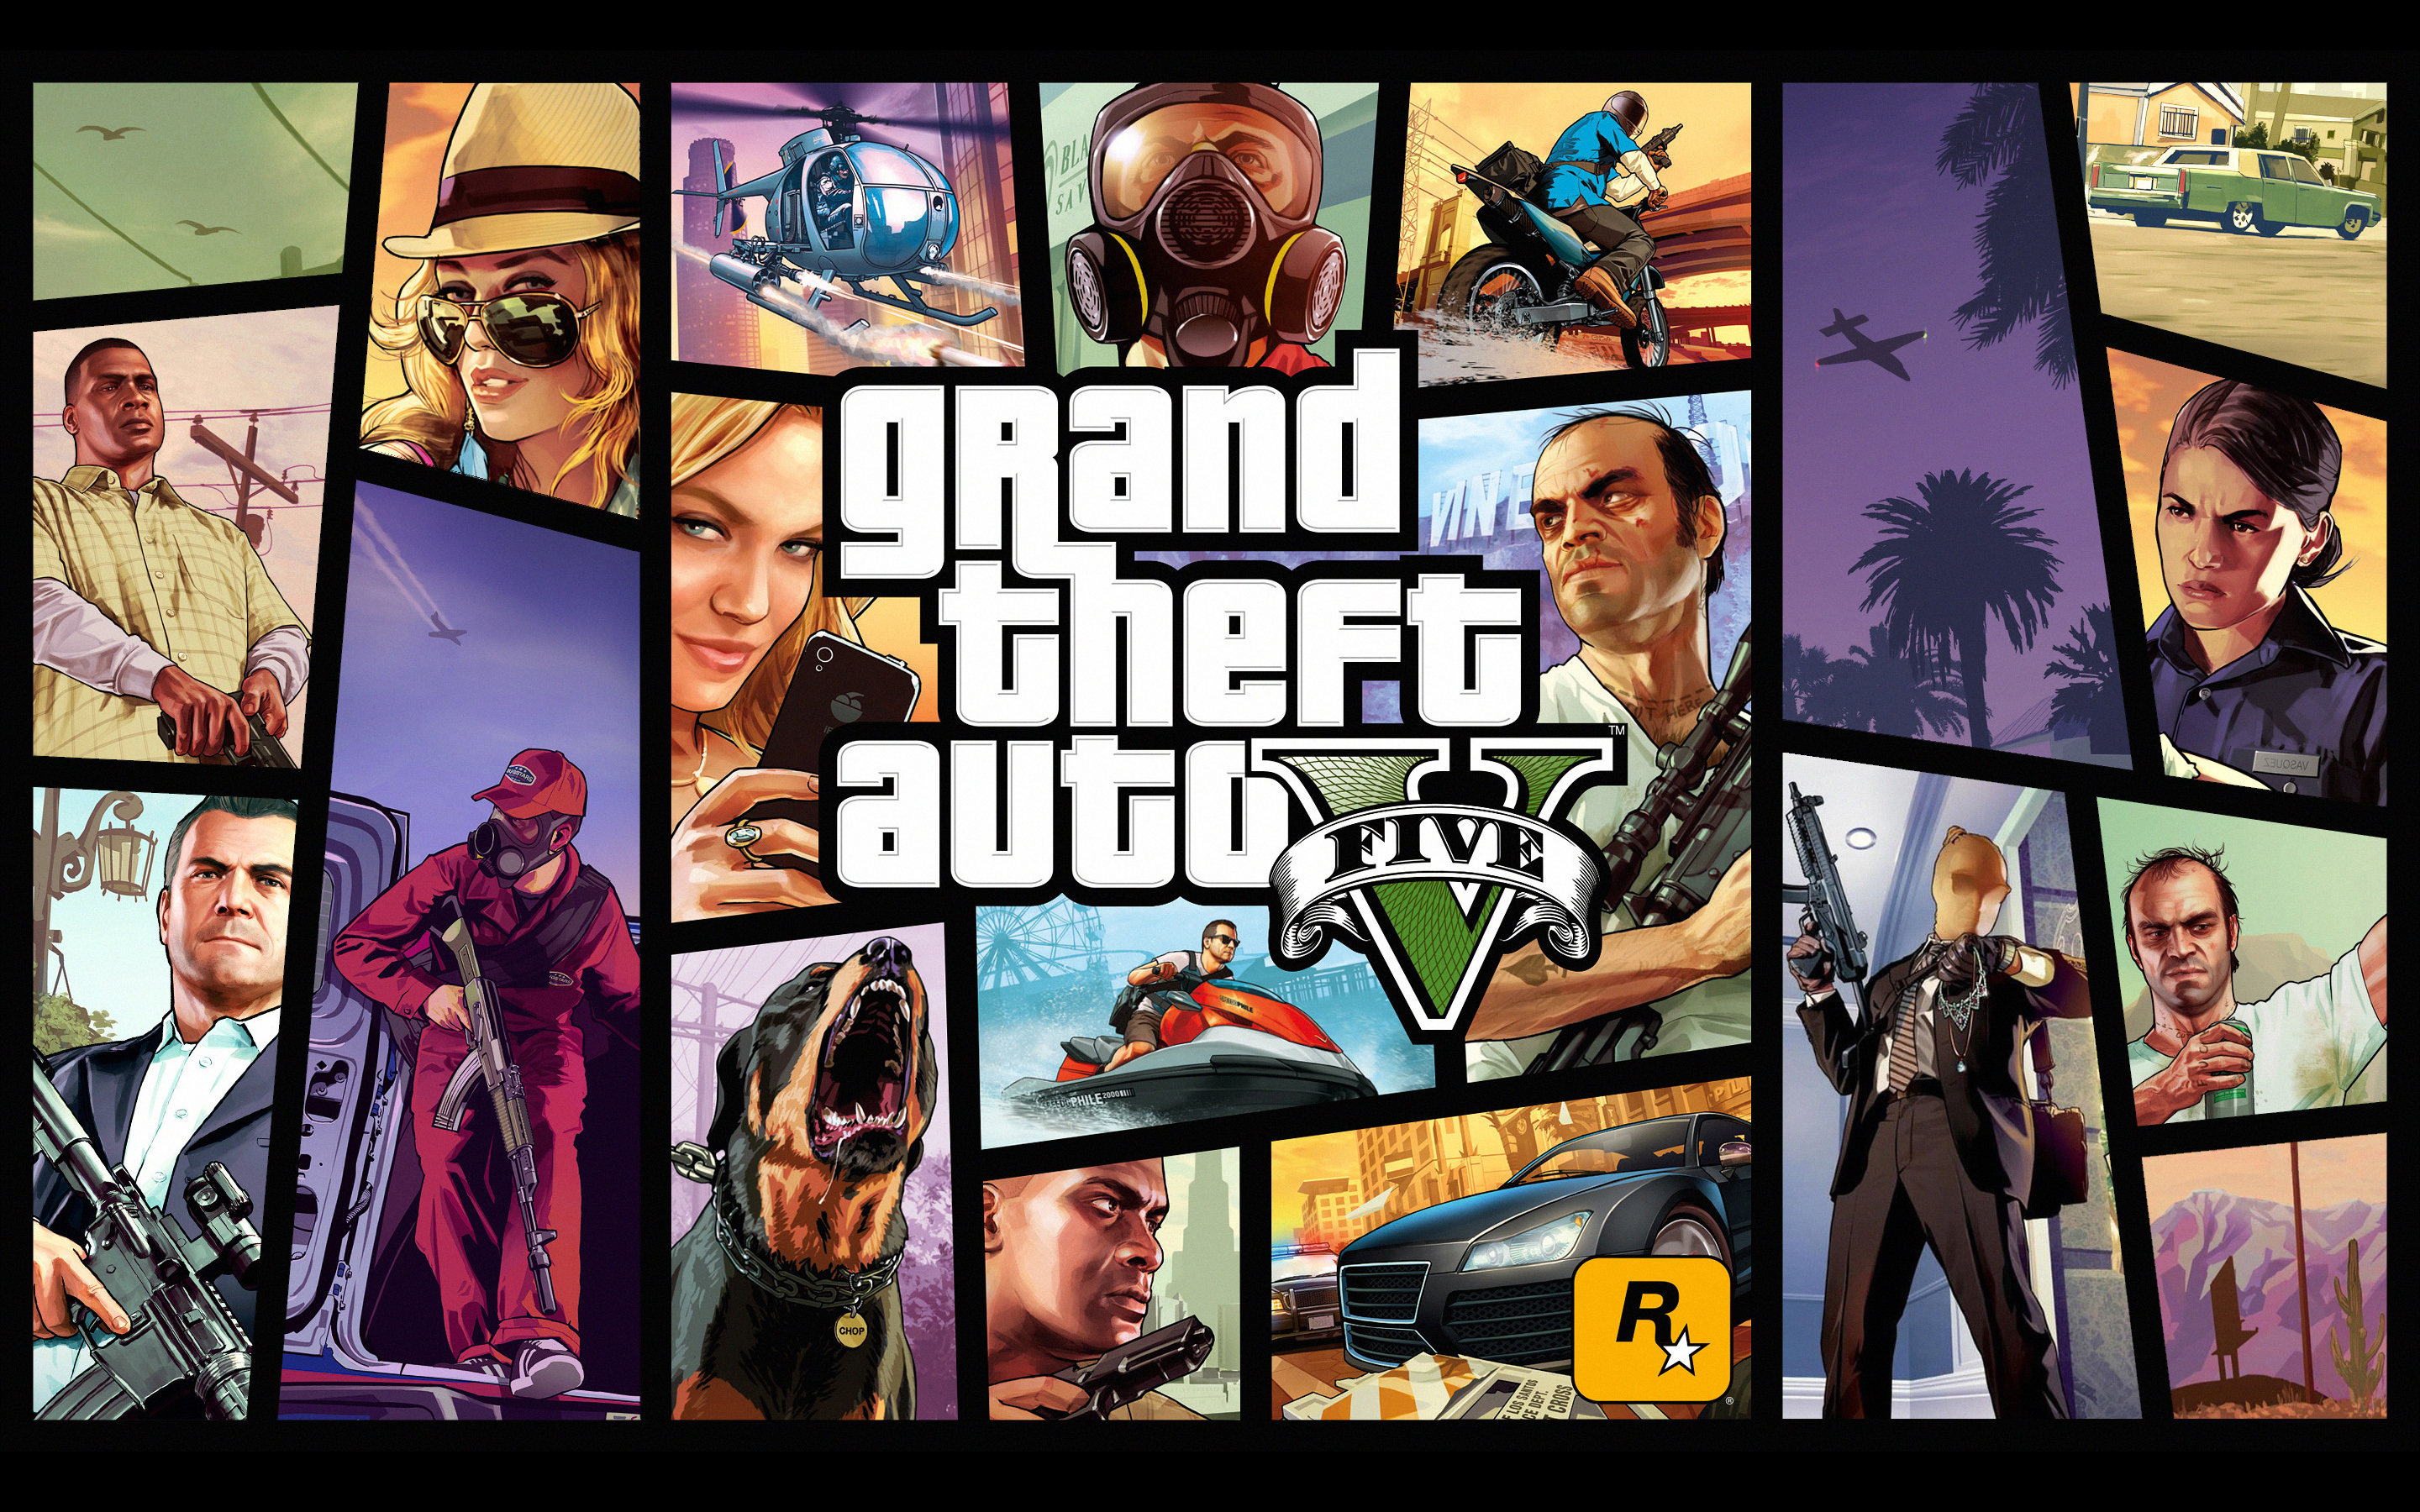 Gta 5 Wallpapers Pictures Images 2880x1800